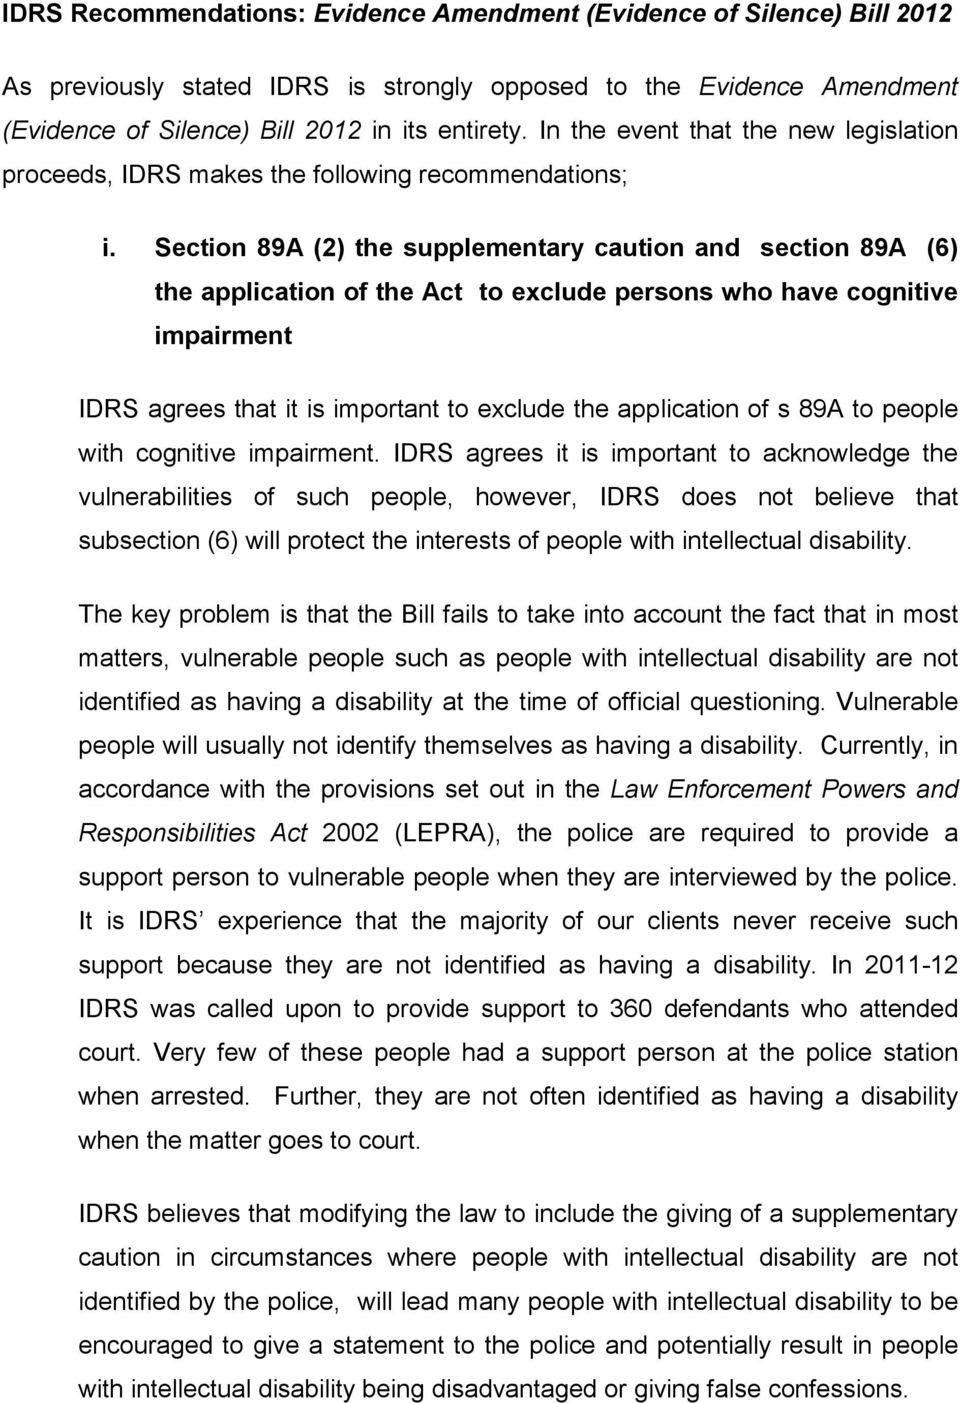 Section 89A (2) the supplementary caution and section 89A (6) the application of the Act to exclude persons who have cognitive impairment IDRS agrees that it is important to exclude the application